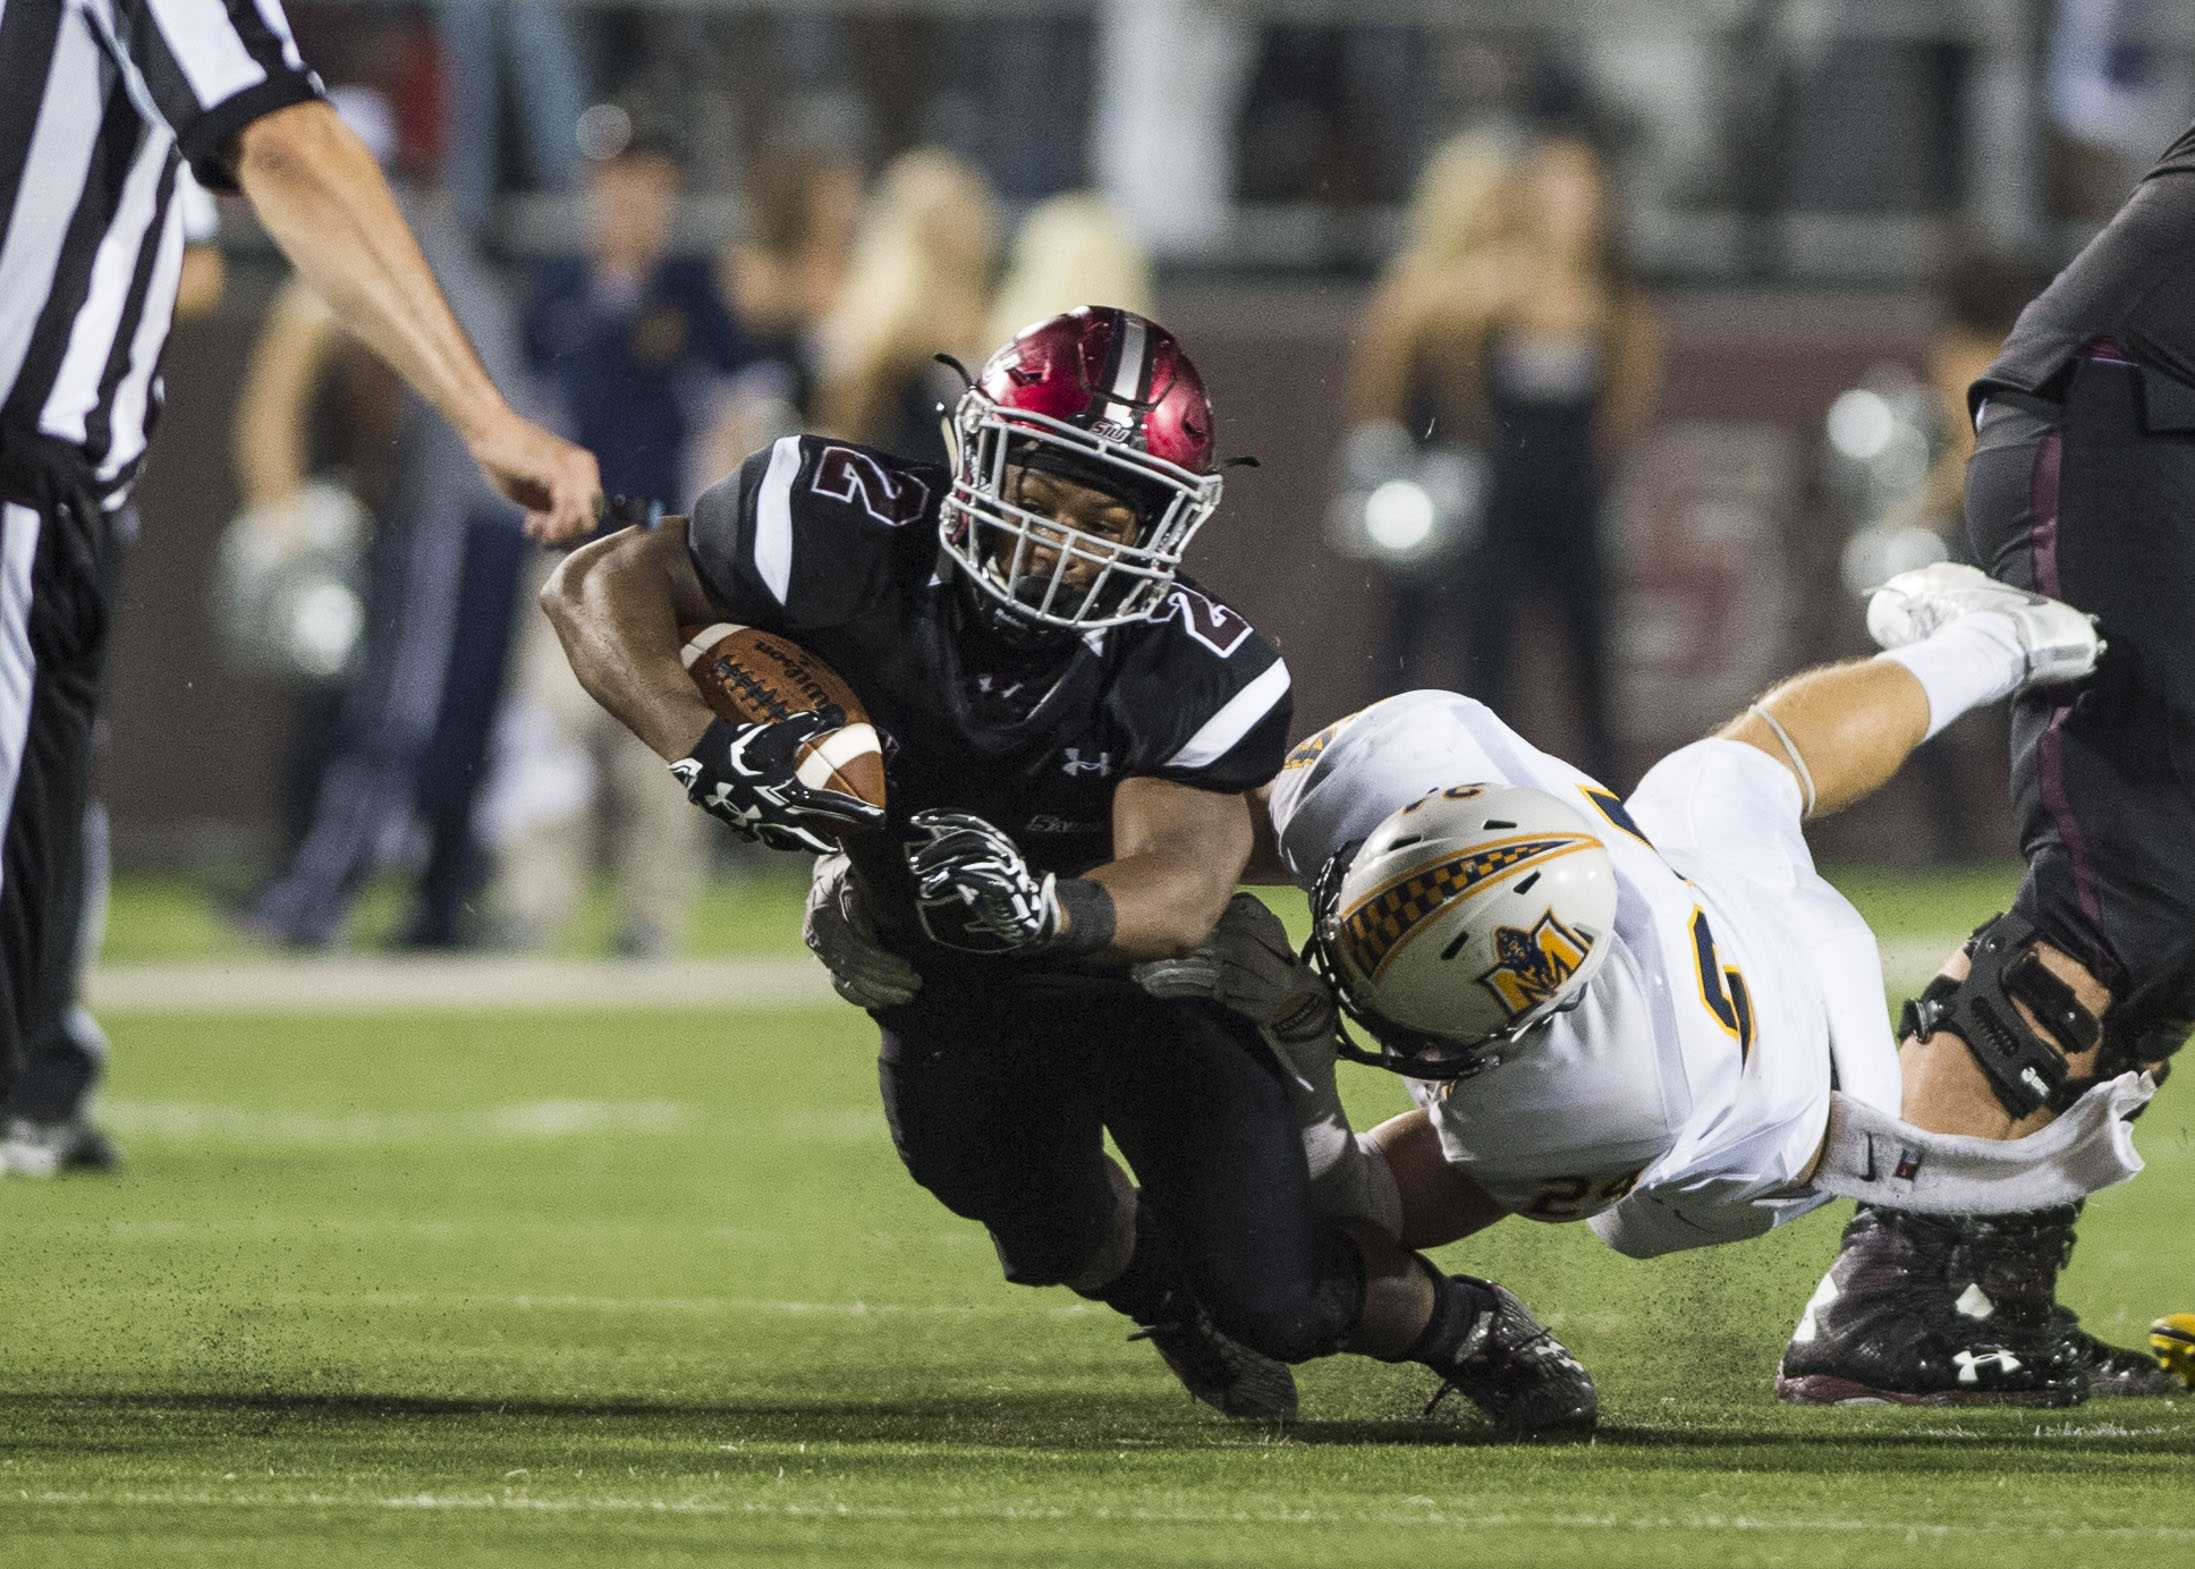 SIU senior running back Aaron Stanton (2) is brought down by Murray State senior defensive back Toby Omli (24) during the Salukis' 50-17 win over the Racers on Saturday, Sept. 17, 2016, at Saluki Stadium. (Ryan Michalesko | @photosbylesko)